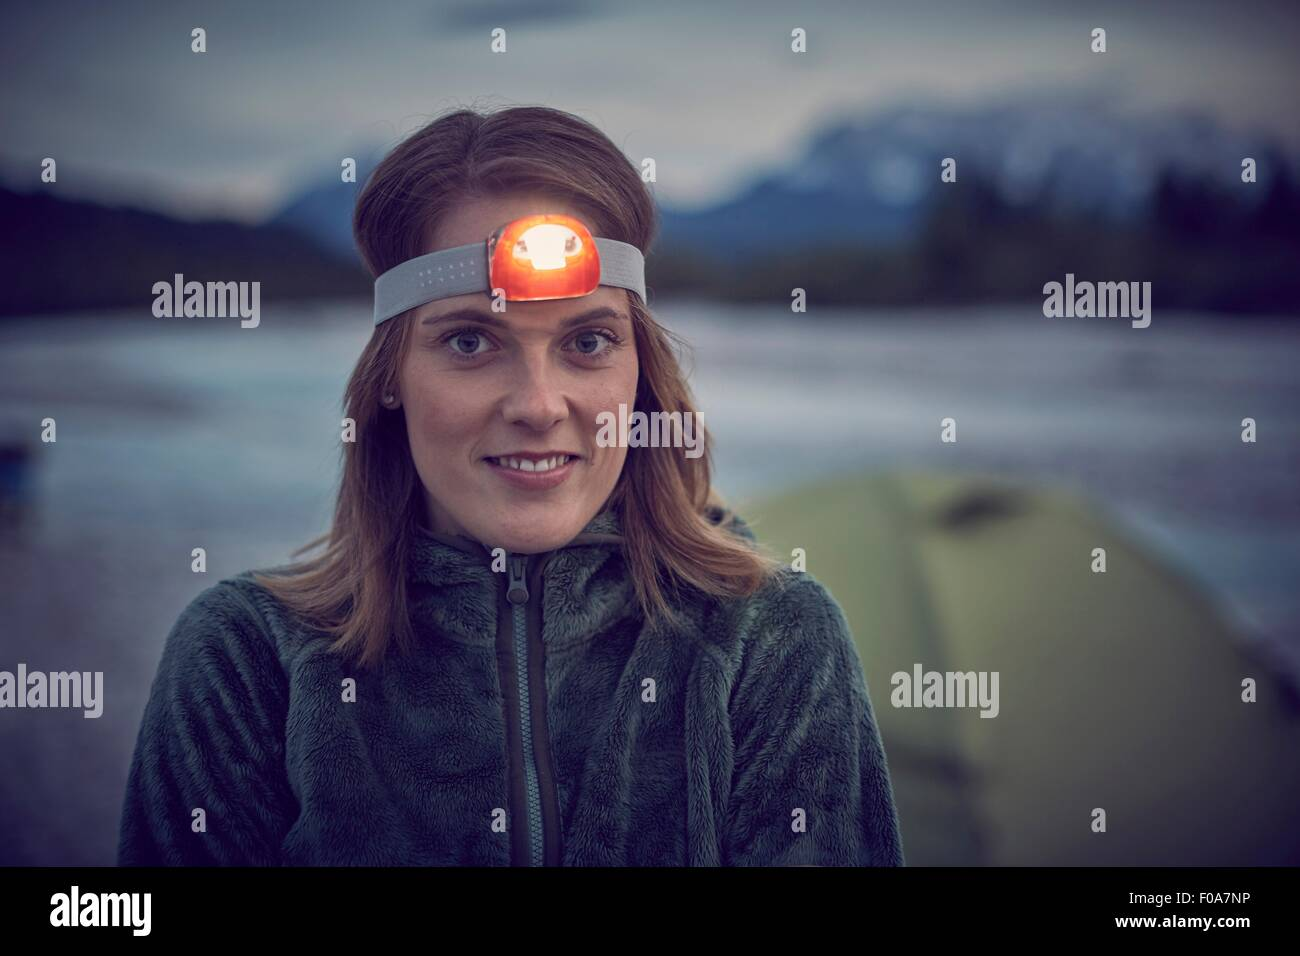 Portrait of young woman wearing headlamp, looking at camera - Stock Image